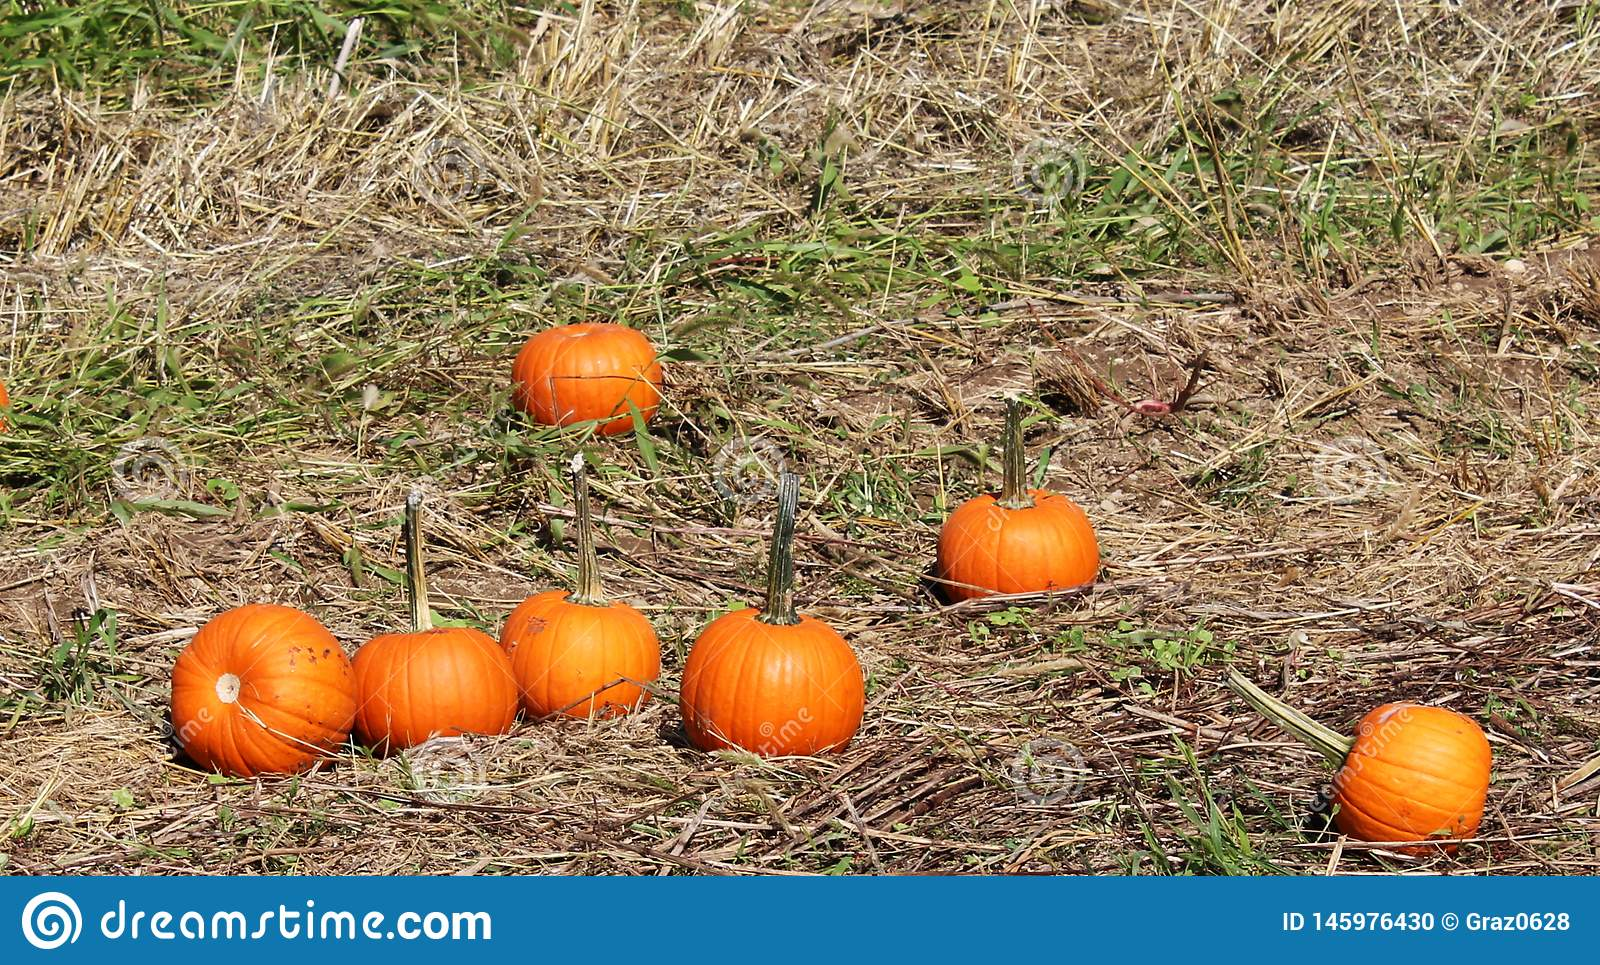 Pumpkins in the grass at pumpkin patch